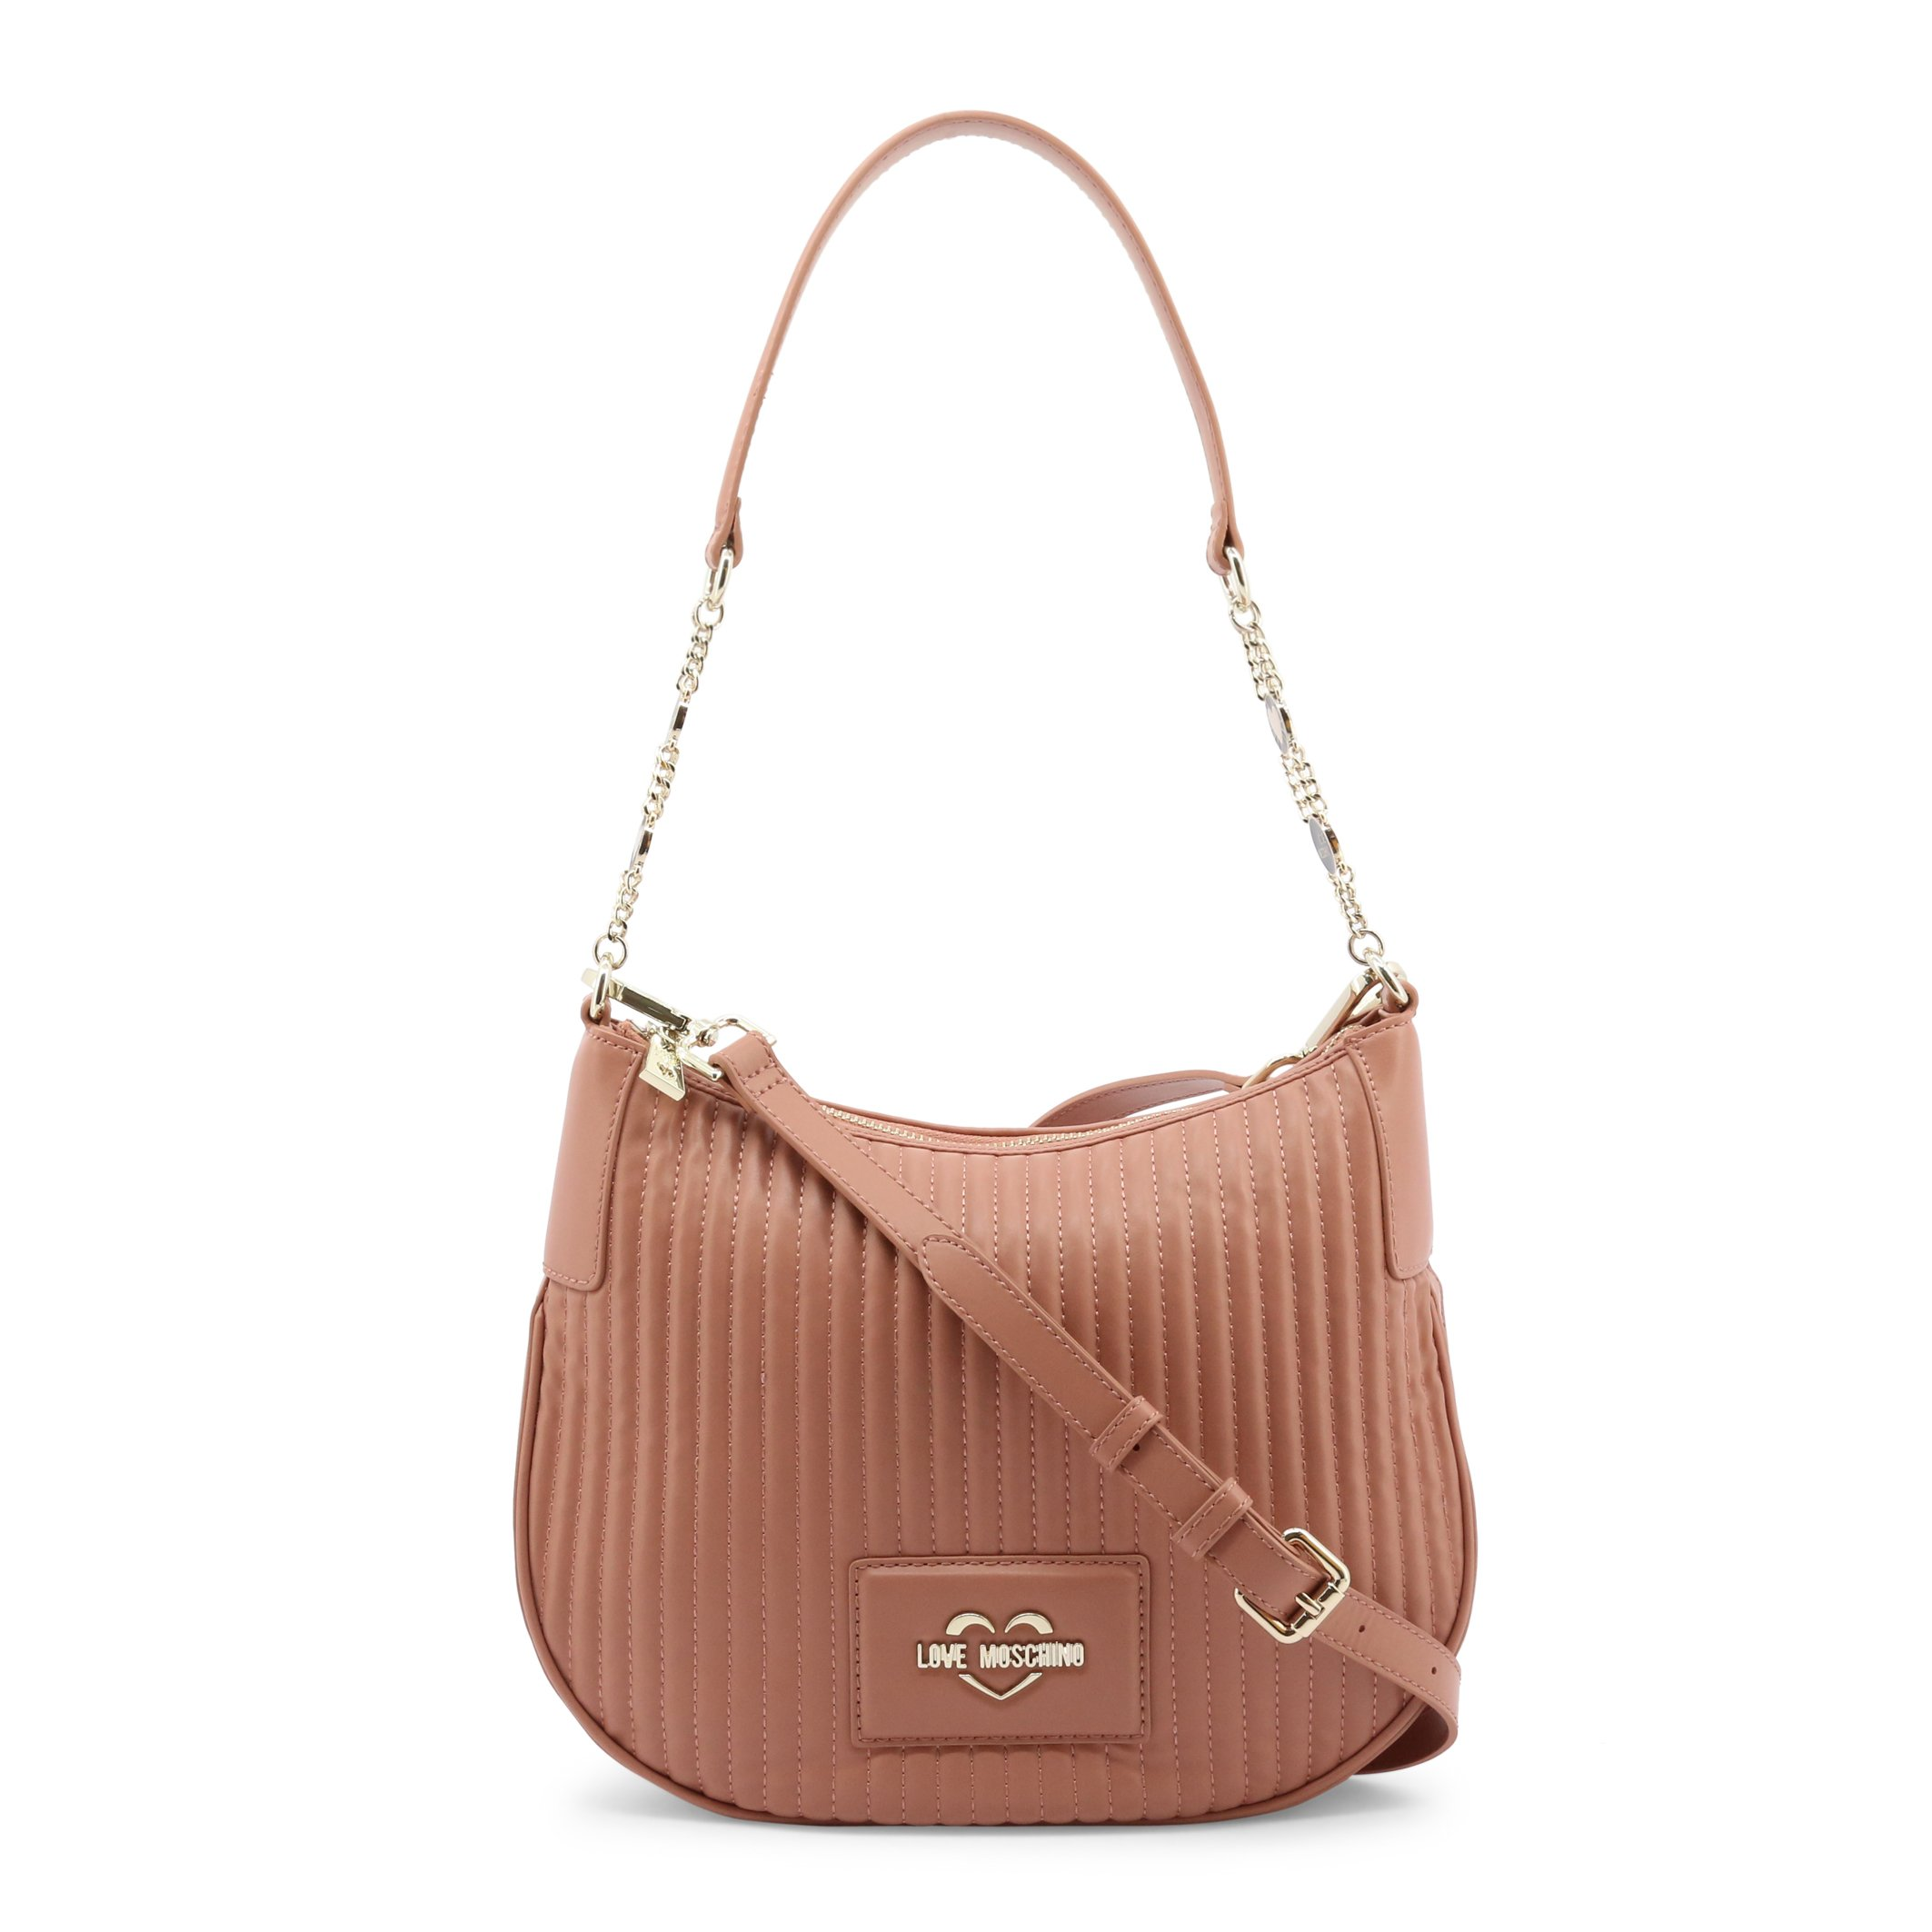 Love Moschino Women's Shoulder Bag Various Colours JC4140PP1DLB0 - pink NOSIZE